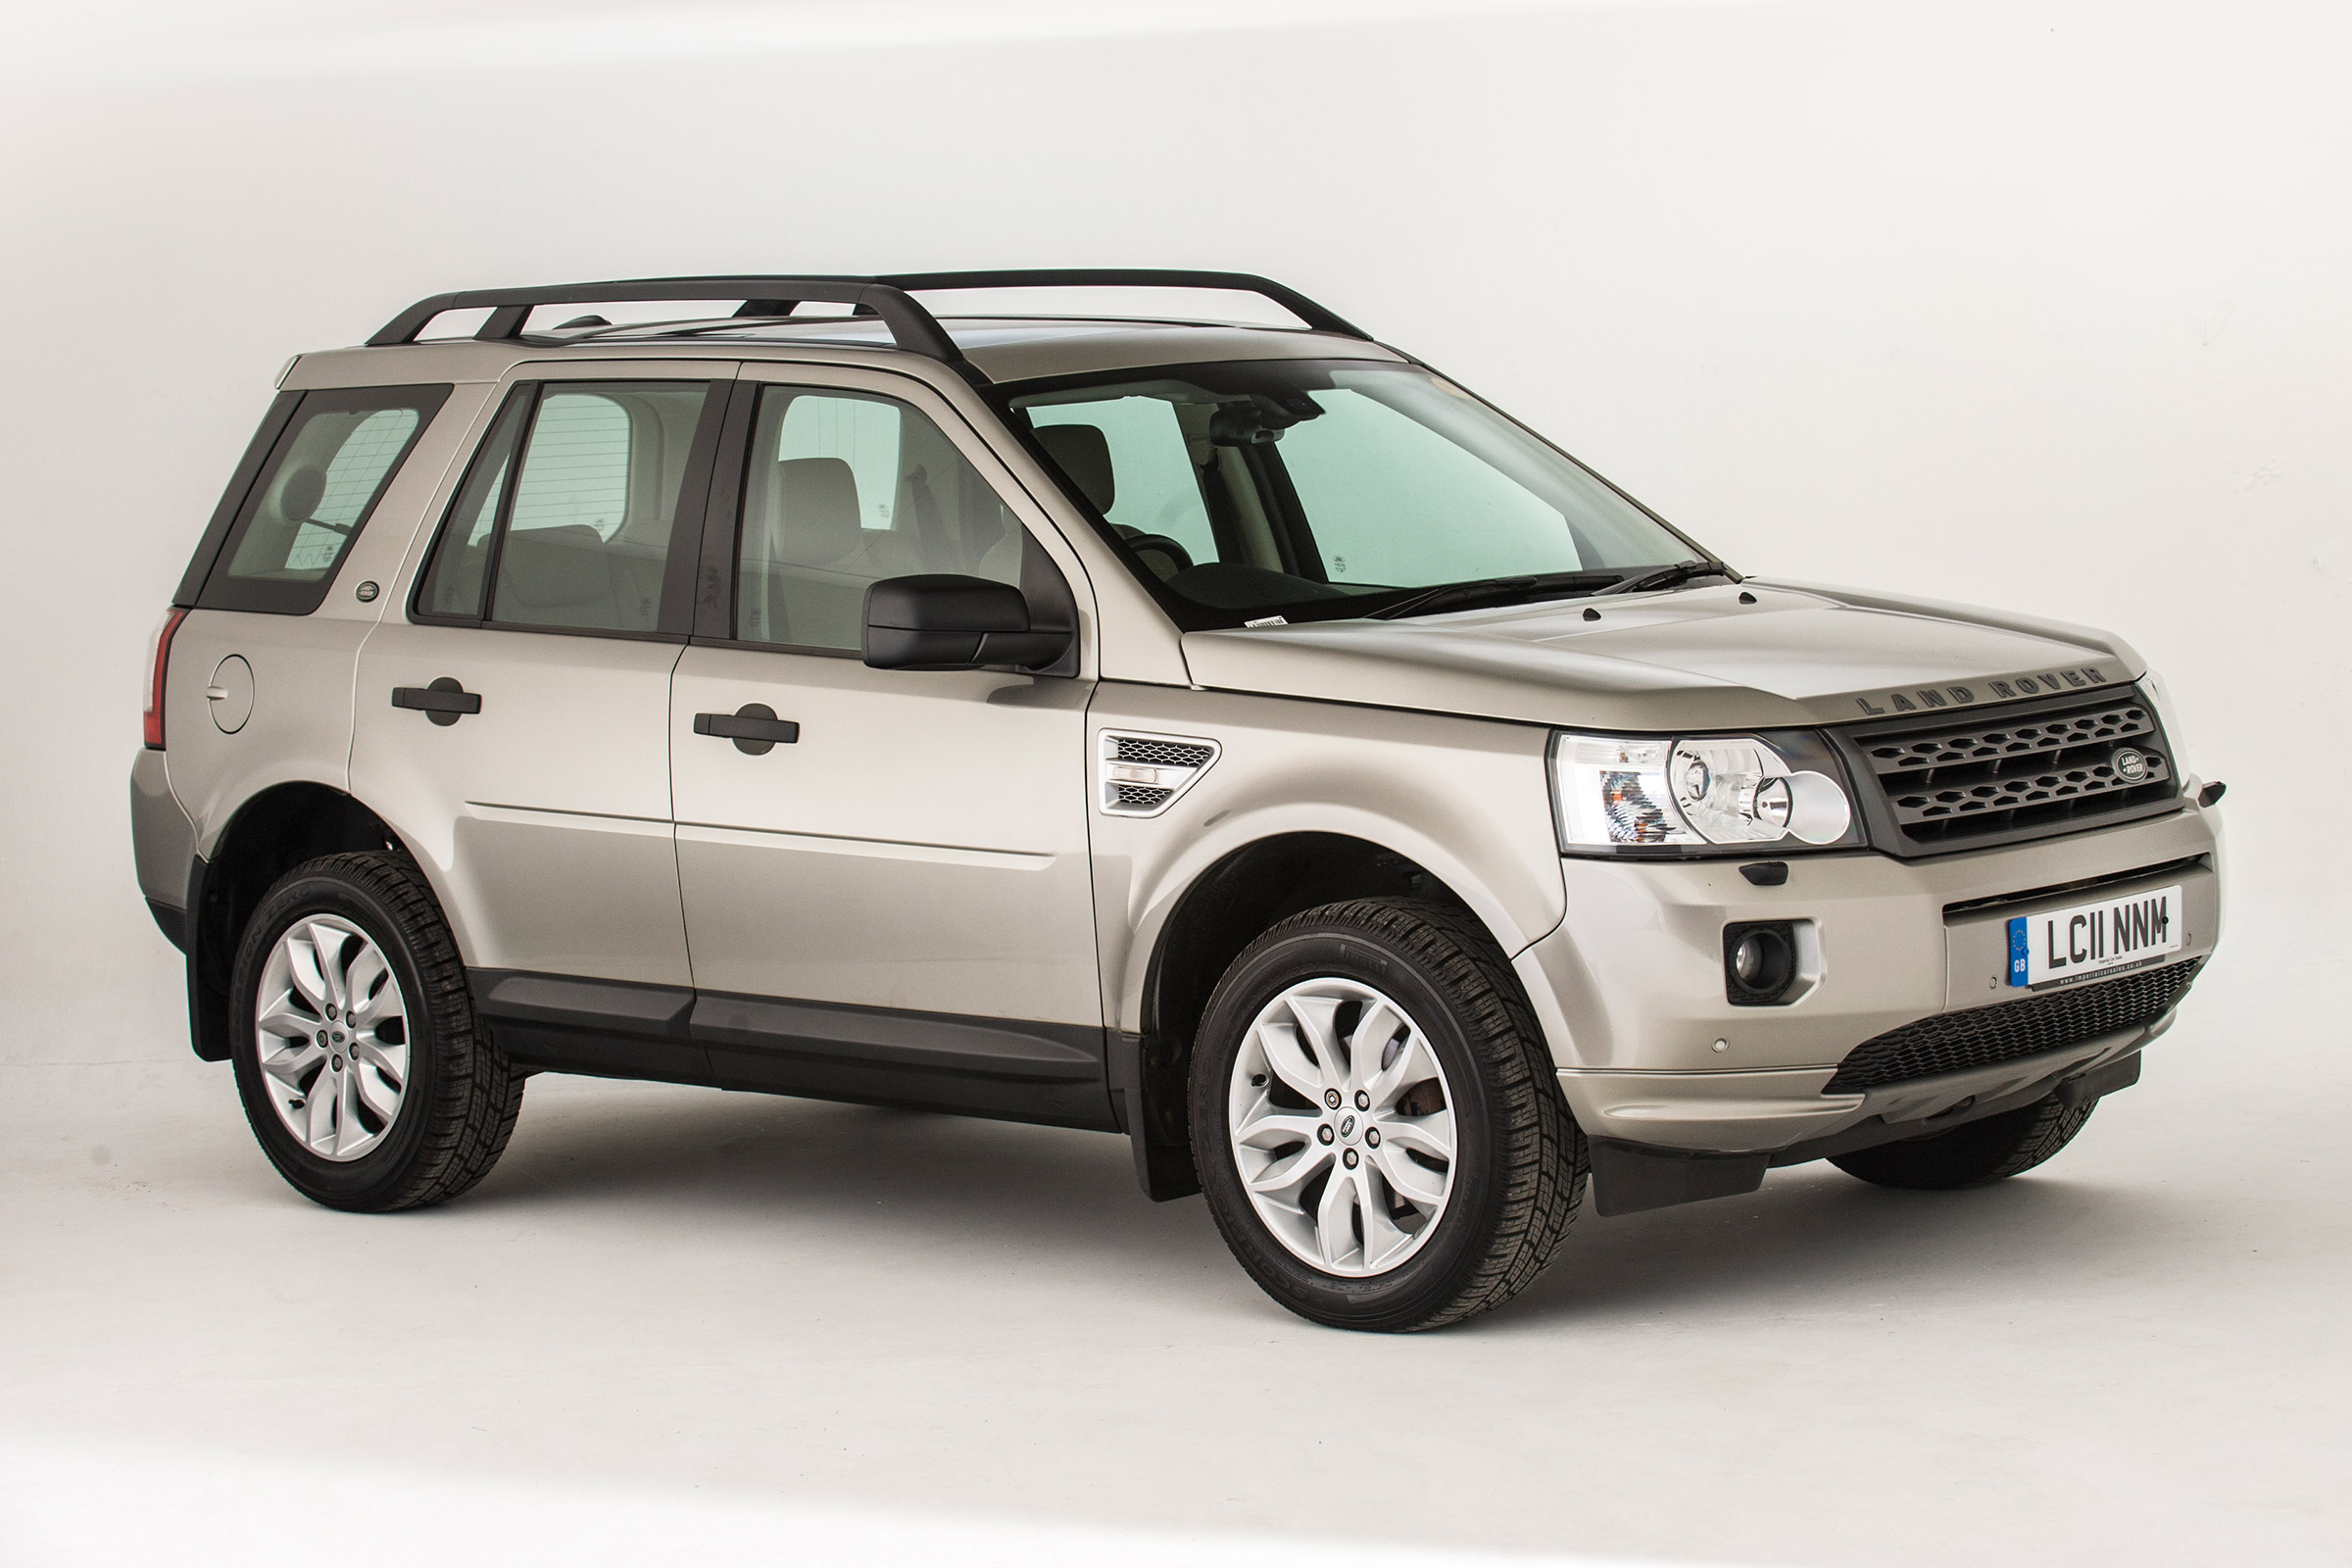 Land rover freelander photo - 7